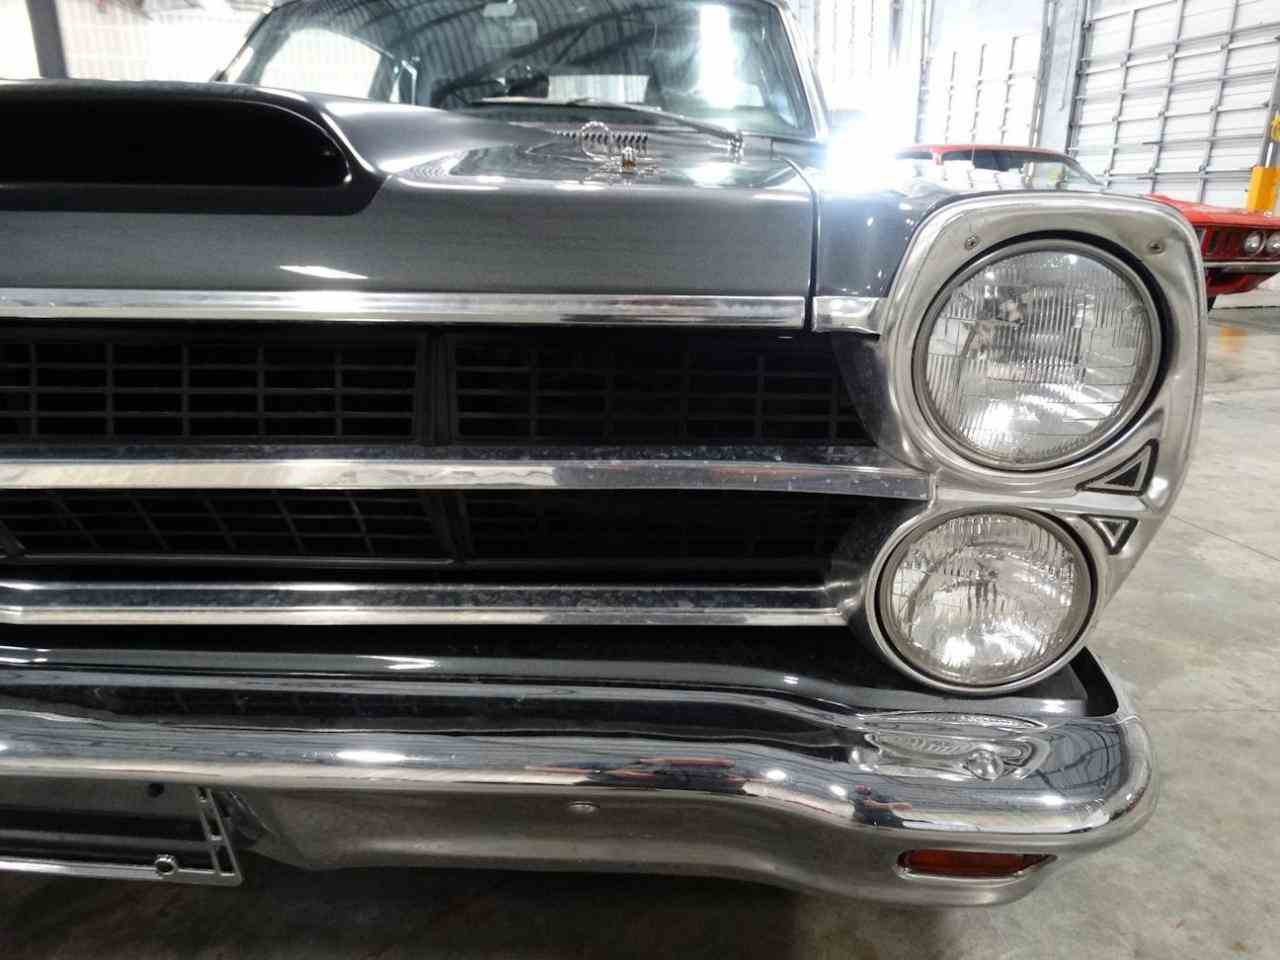 Large Picture of 1967 Ford Fairlane located in Coral Springs Florida - $27,995.00 Offered by Gateway Classic Cars - Fort Lauderdale - L7H3